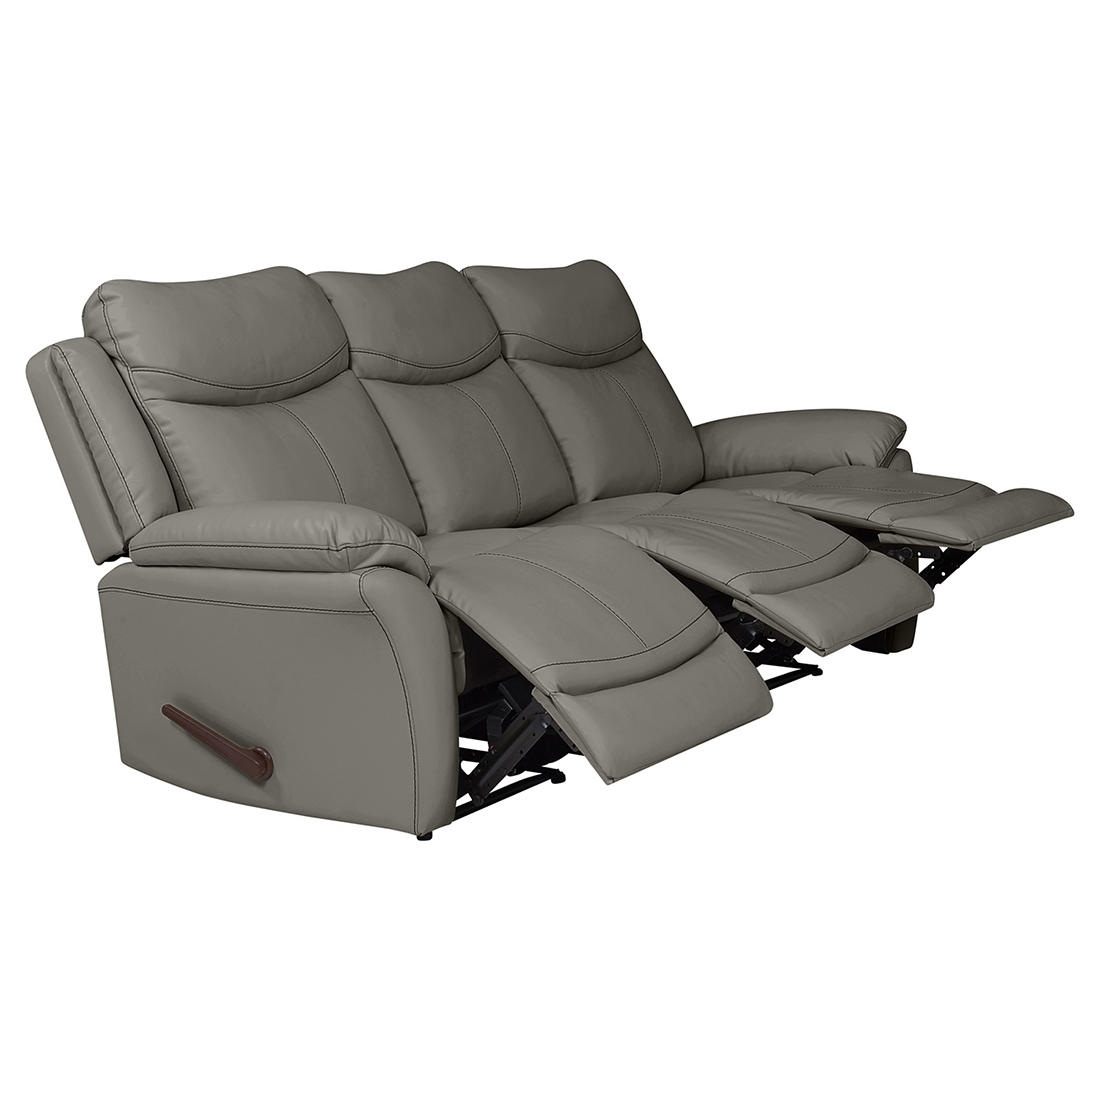 ProLounger Wall Hugger Tuff Stuff Recliner Sofa, 3 Seats ...